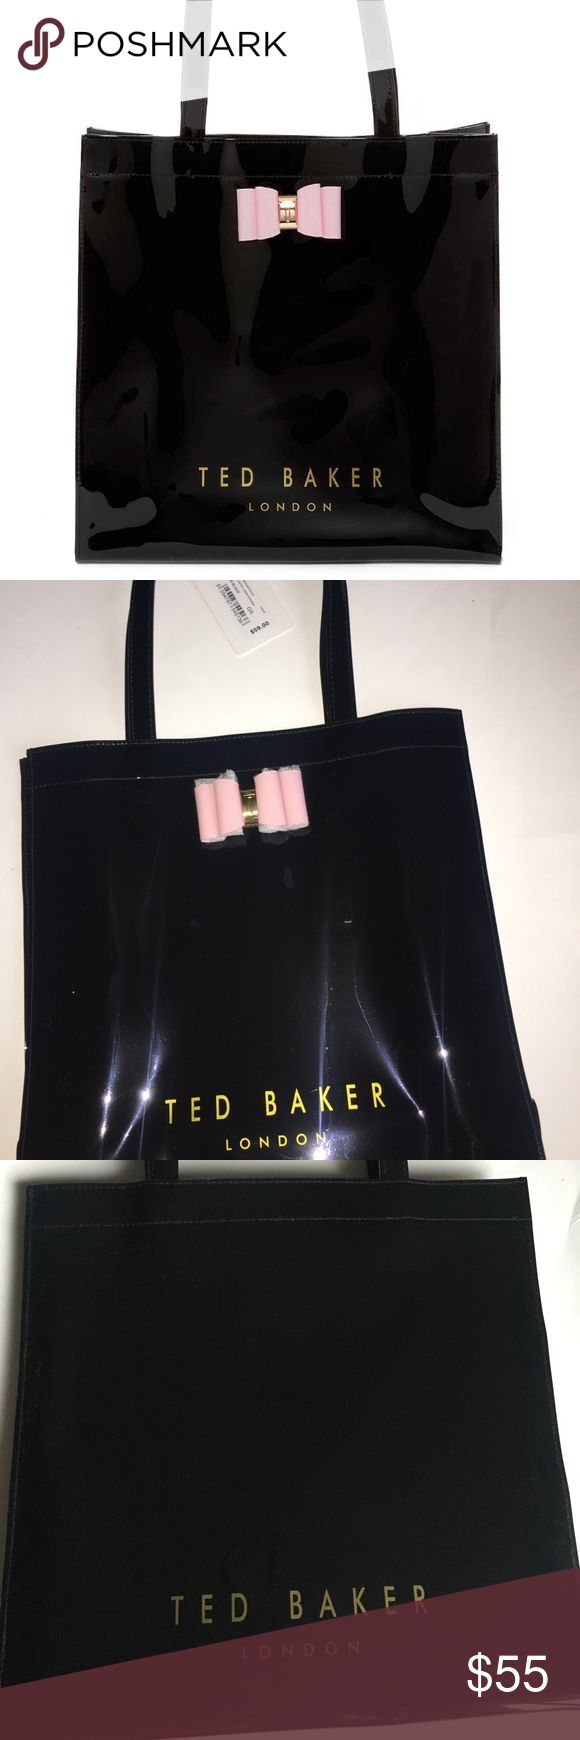 Ted Baker London PVC tote NWT Ted Baker black tote with pink bow. Signature bag to have! Ted Baker London Bags Totes